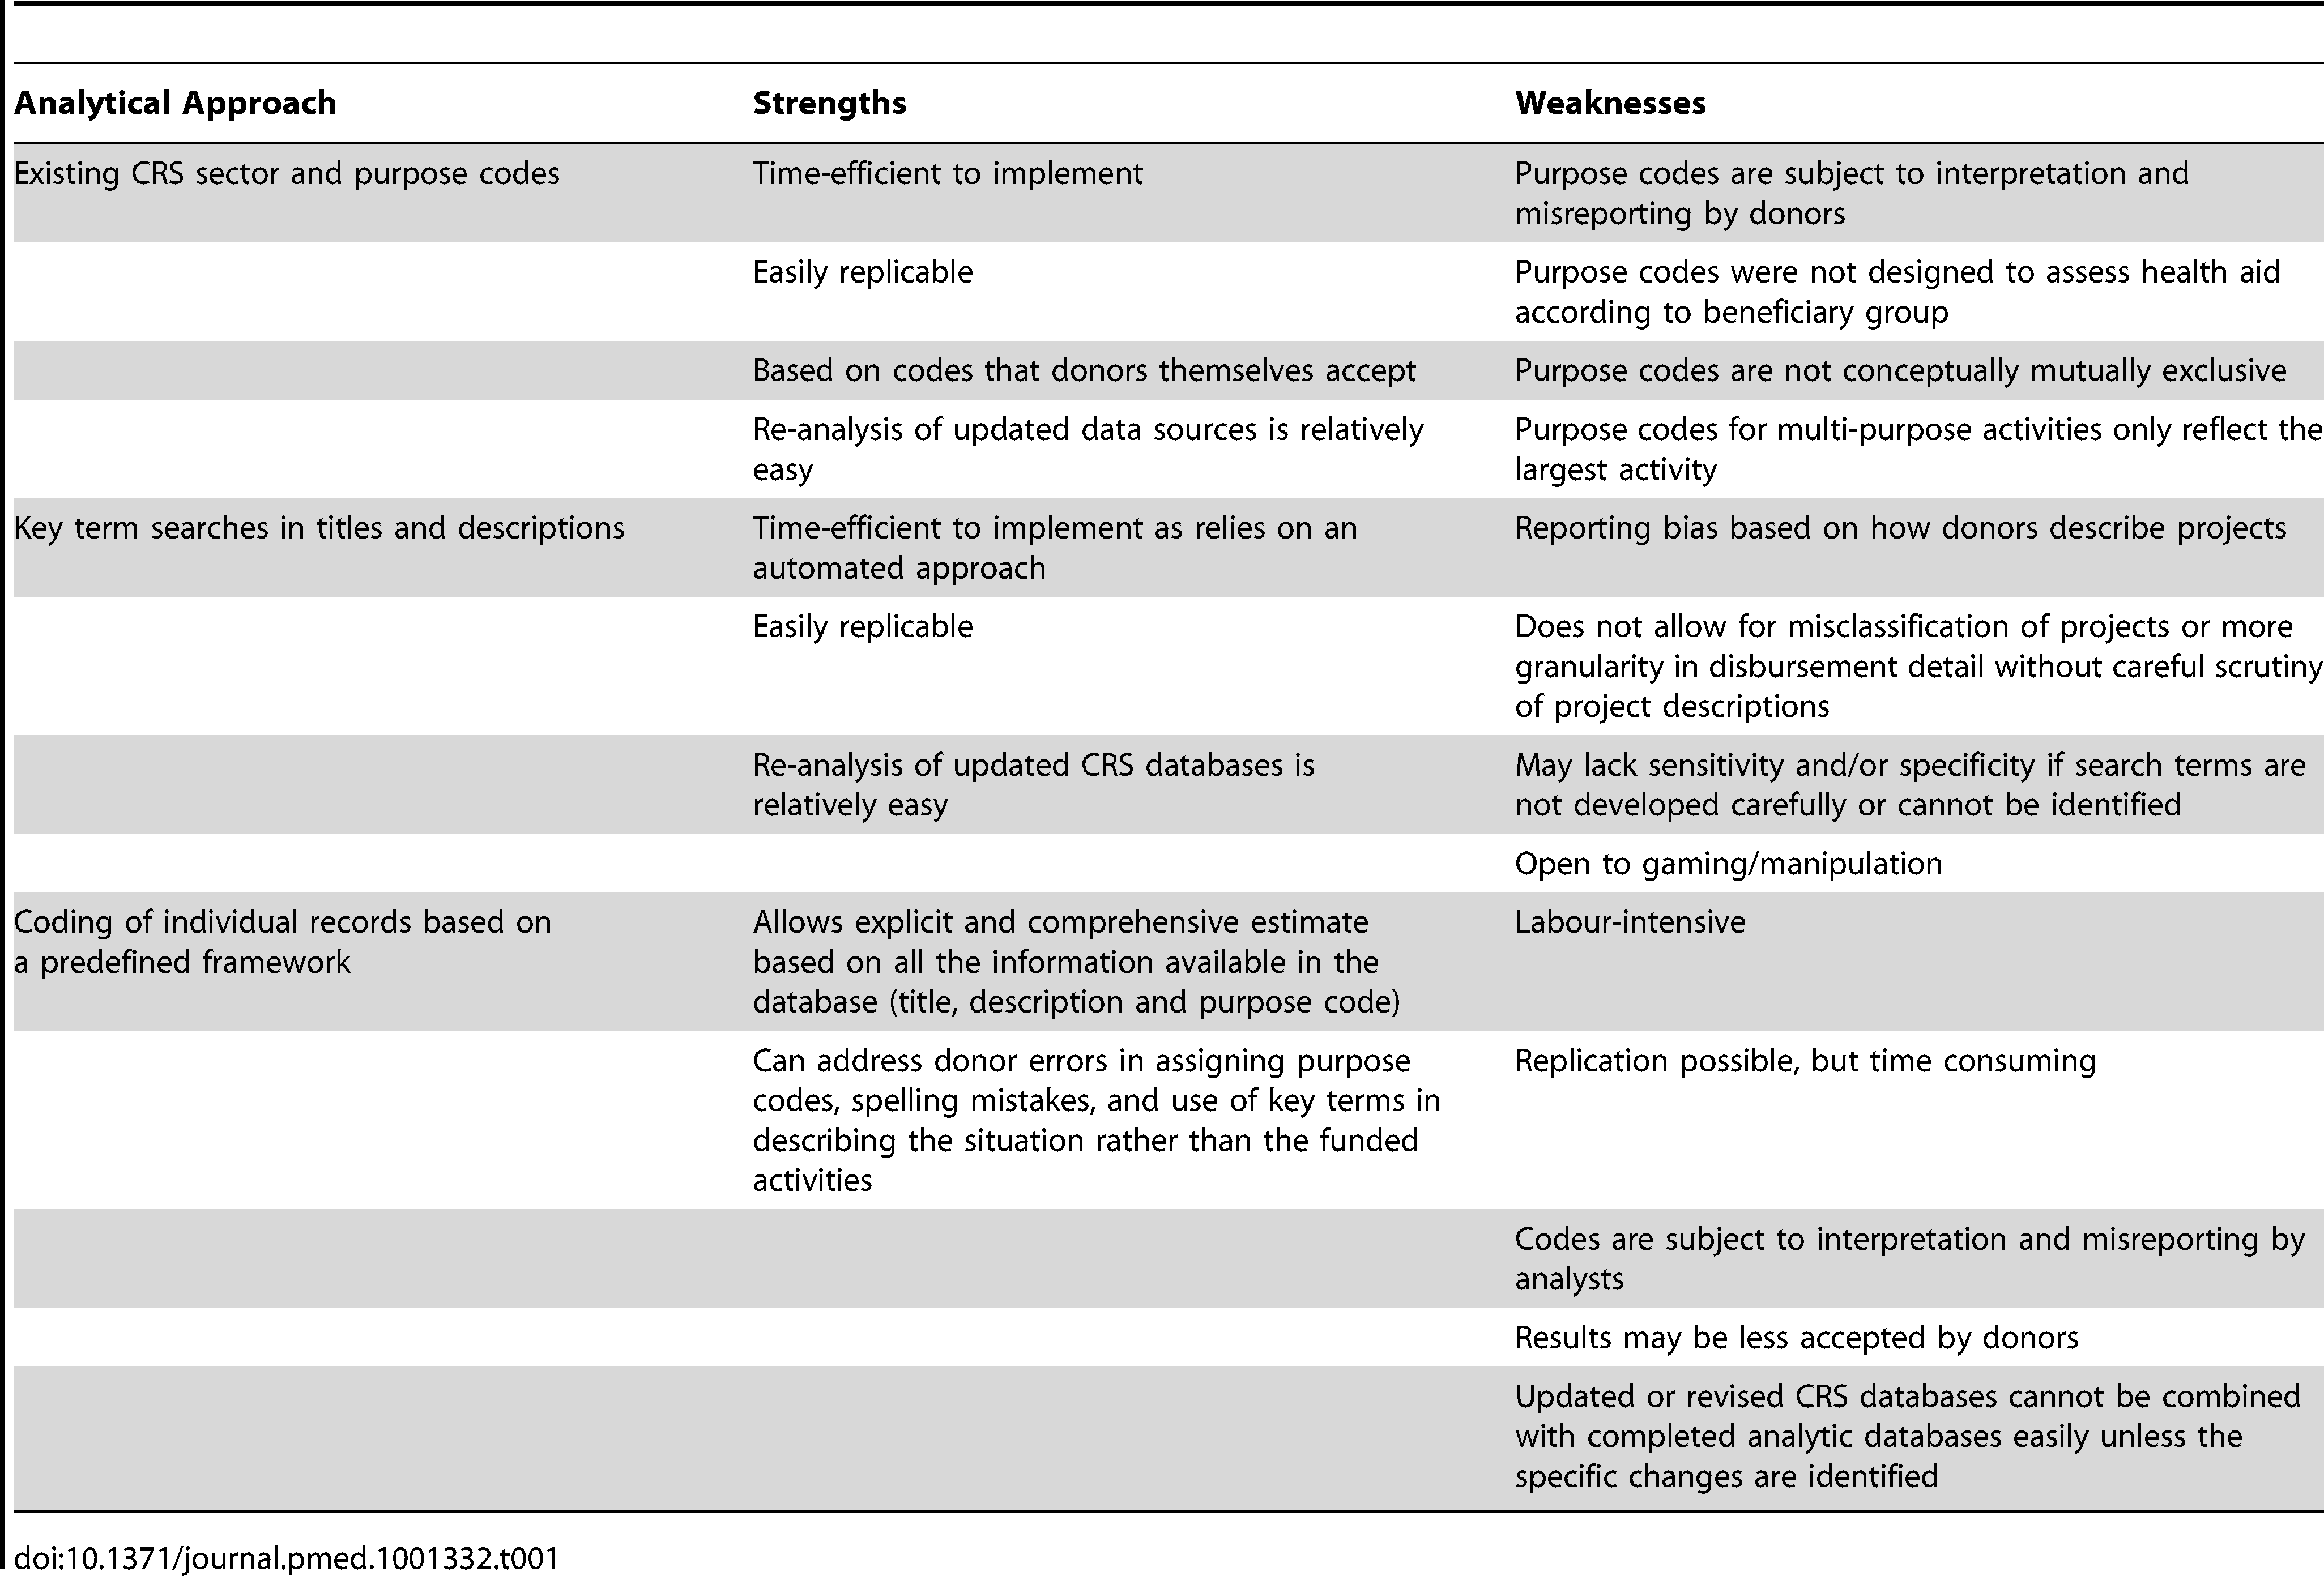 Strengths and weaknesses of the three main analytical approaches for analyzing health aid to specific areas.